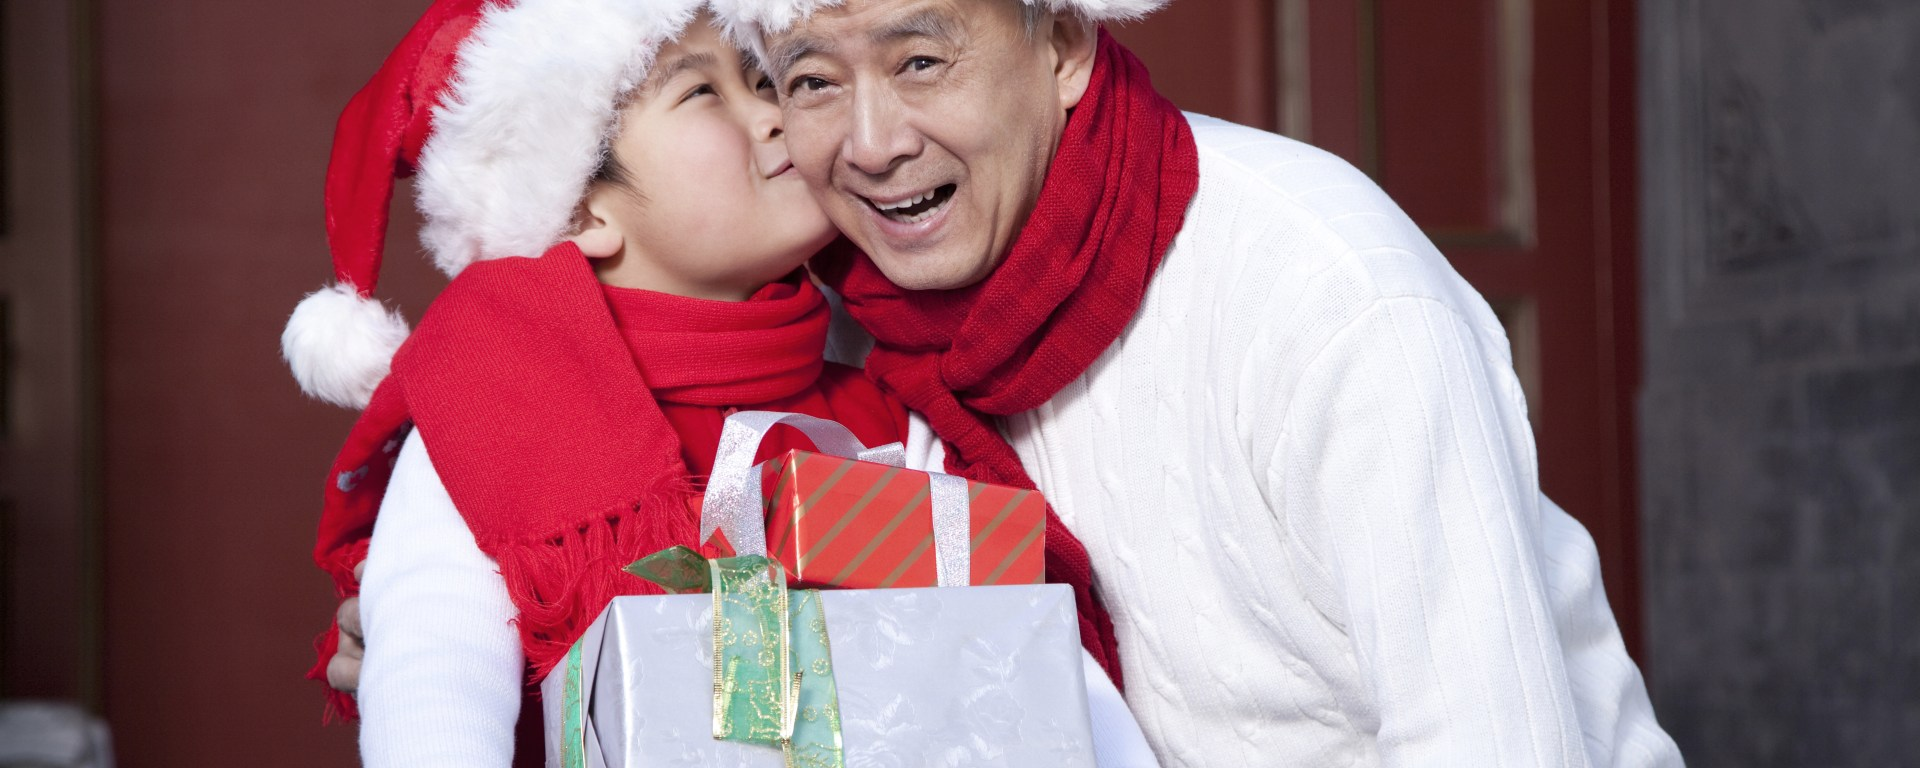 A Grandpa and grandson holding Christmas Gifts